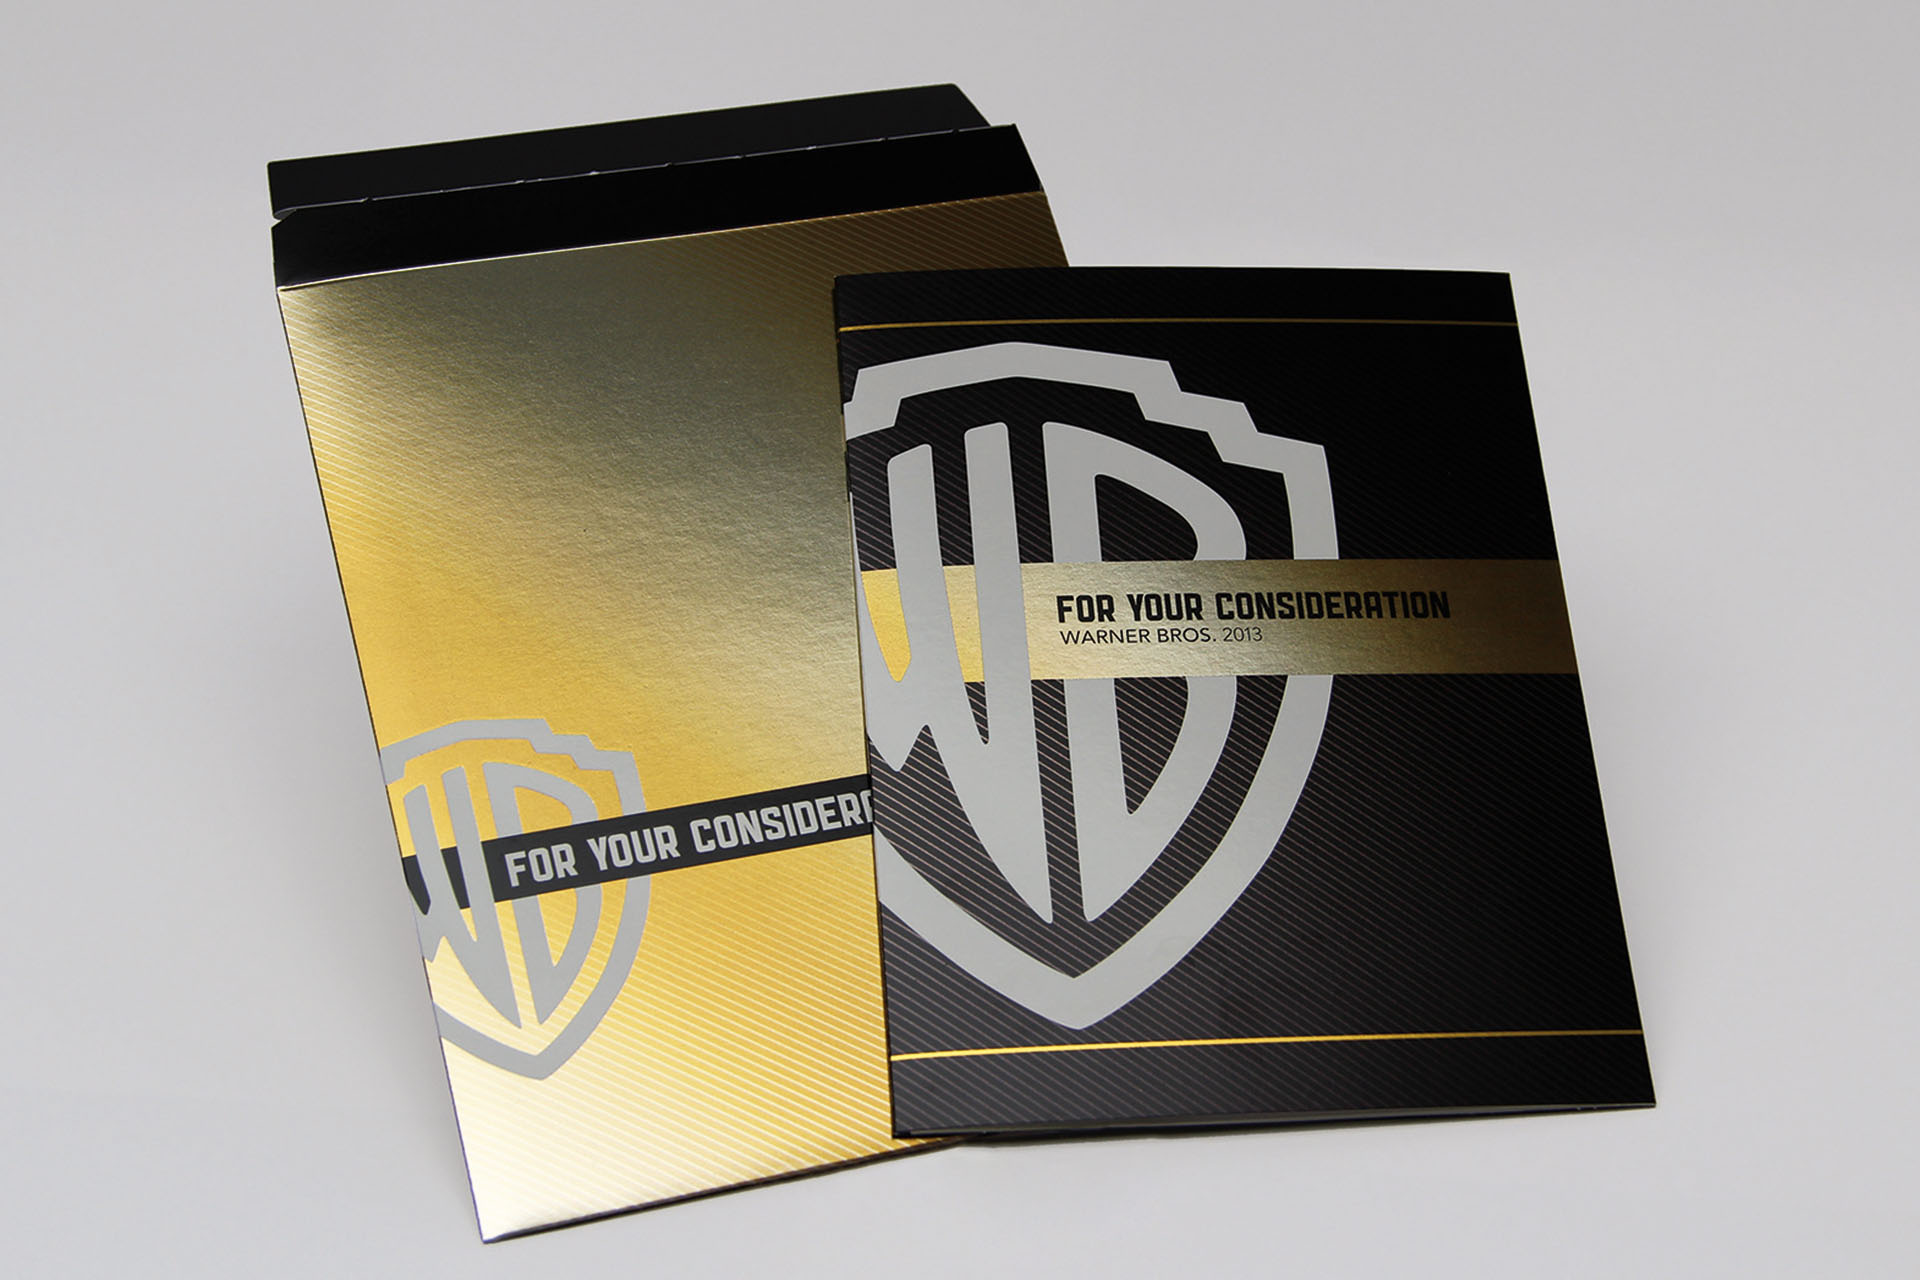 litho printing with cold foil inline and hp indigo printing